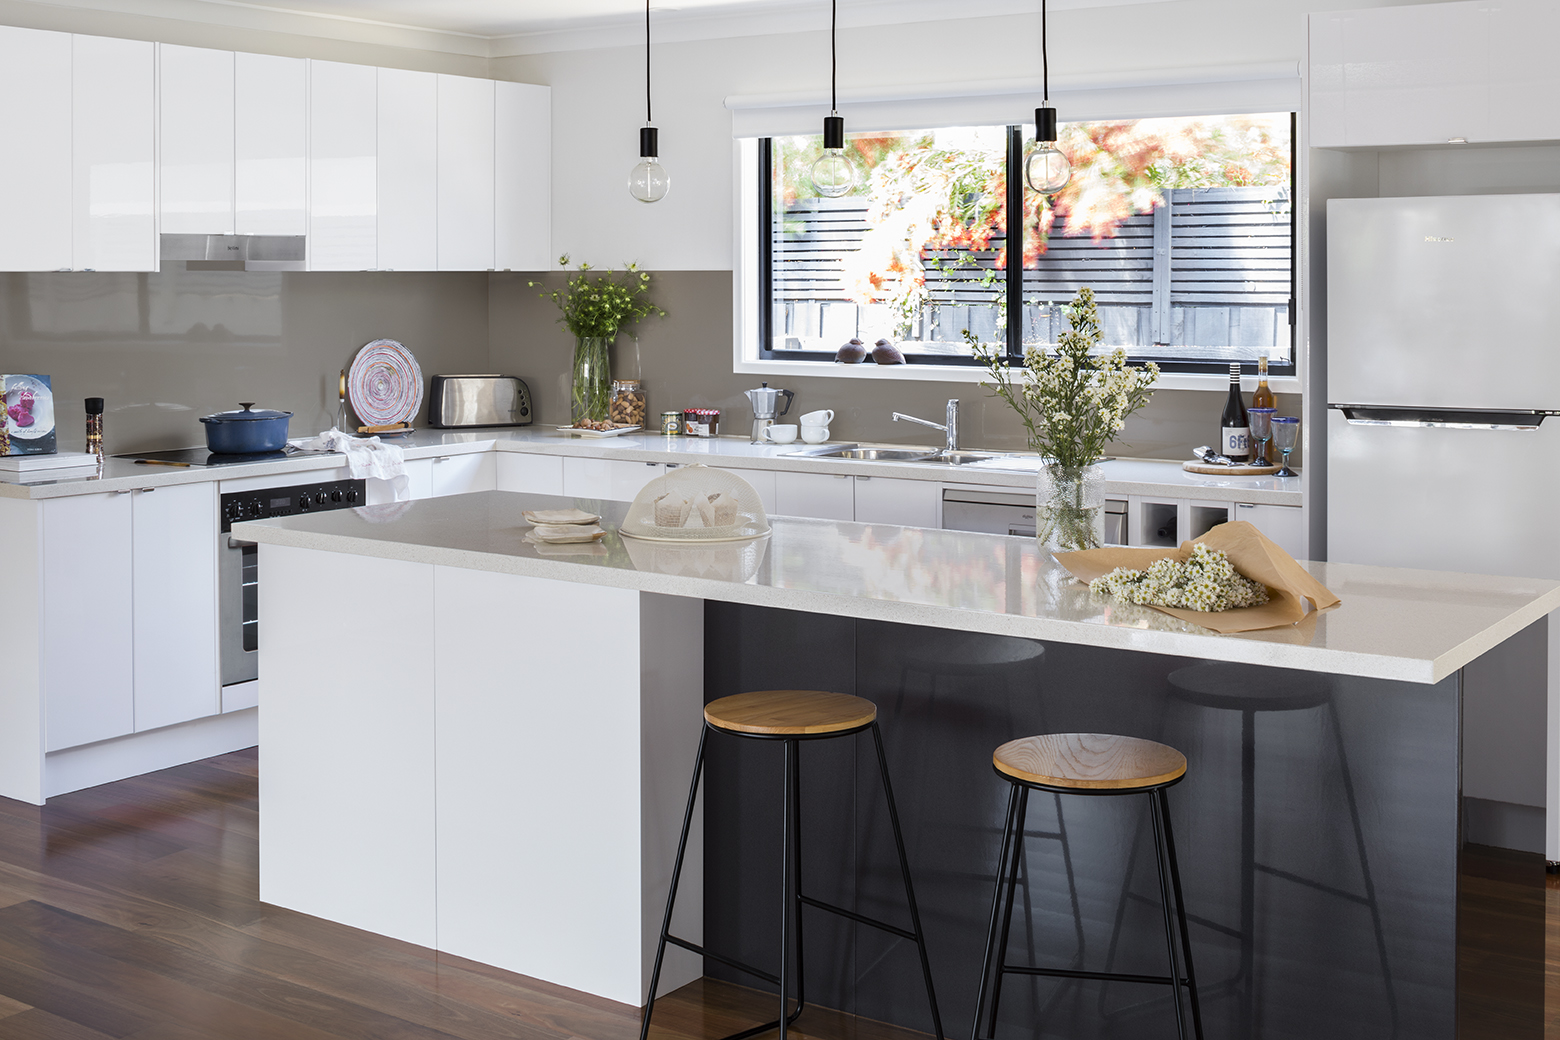 Coastal Getaway - Kitchen Inspiration And Ideas